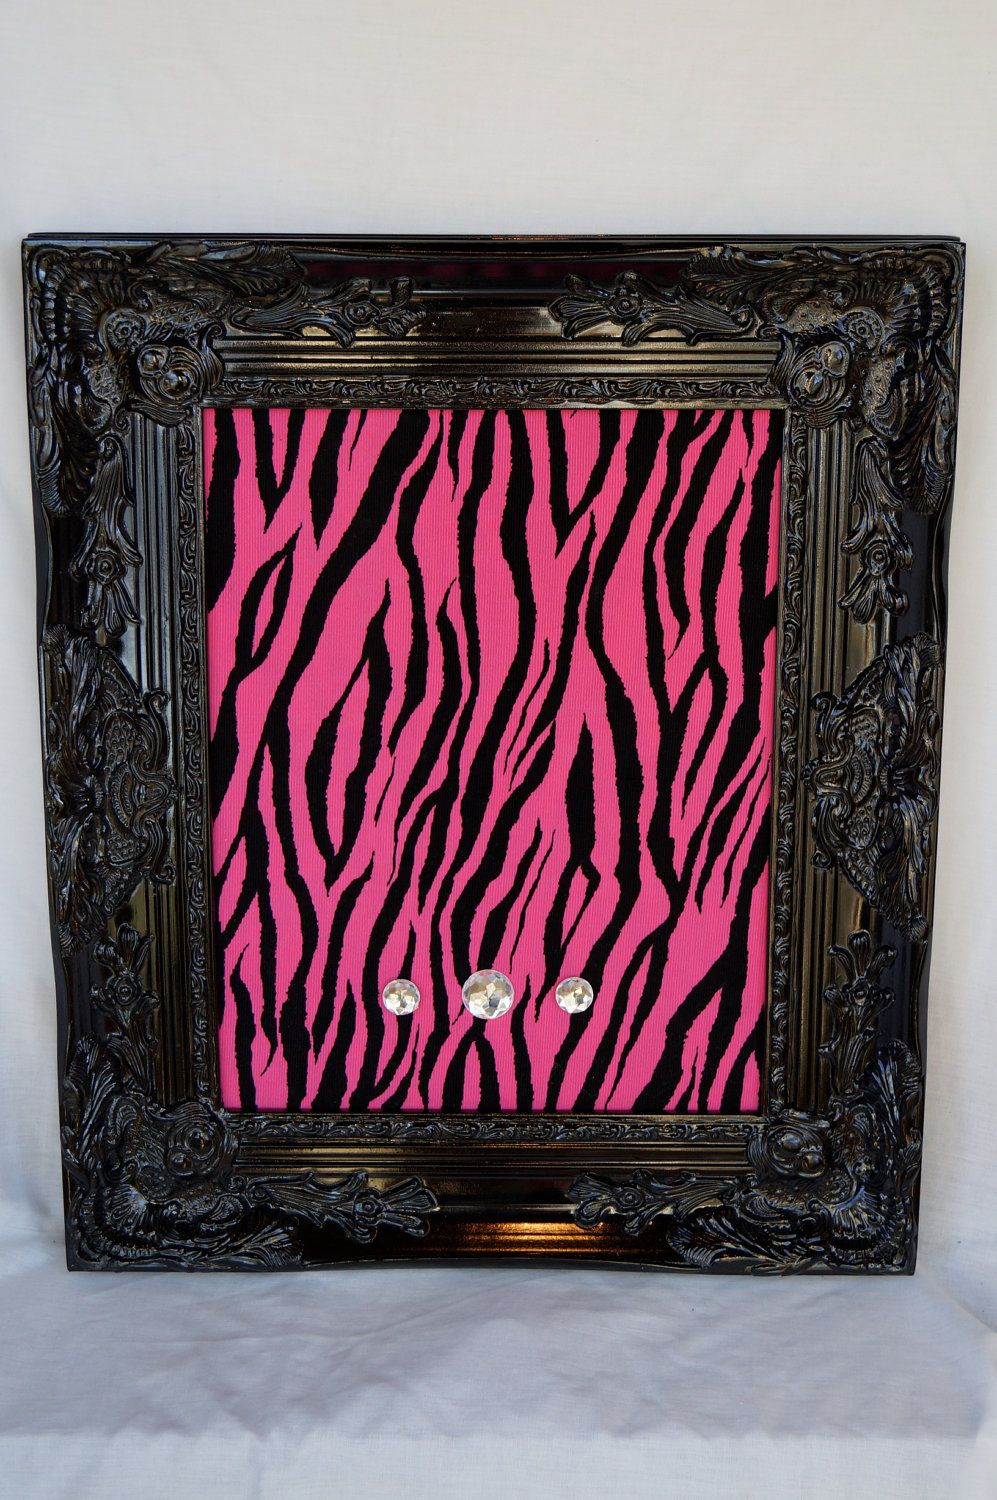 MAGNETIC BOARD 11x14 Pink and Black Zebra Fabric Teen Bedroom Decor Dorm  Room Memo Board Gift Wedding Sign Photo Prop. $67.00, via Etsy.